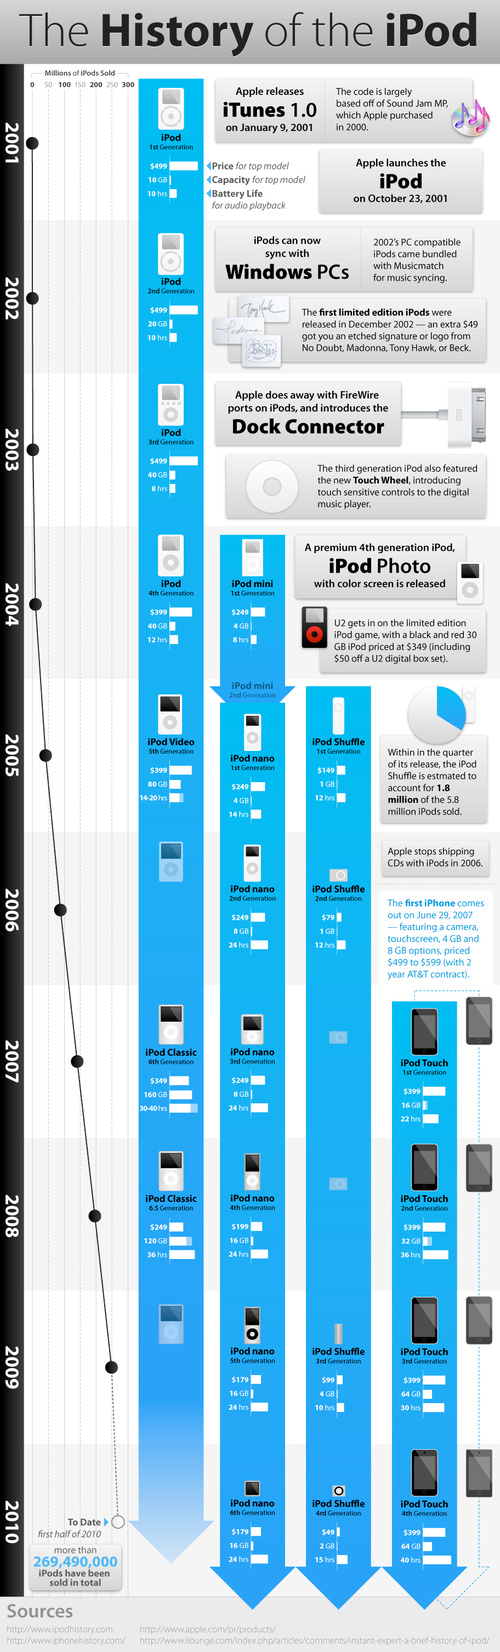 history-of-the-ipod-timeline-iphone